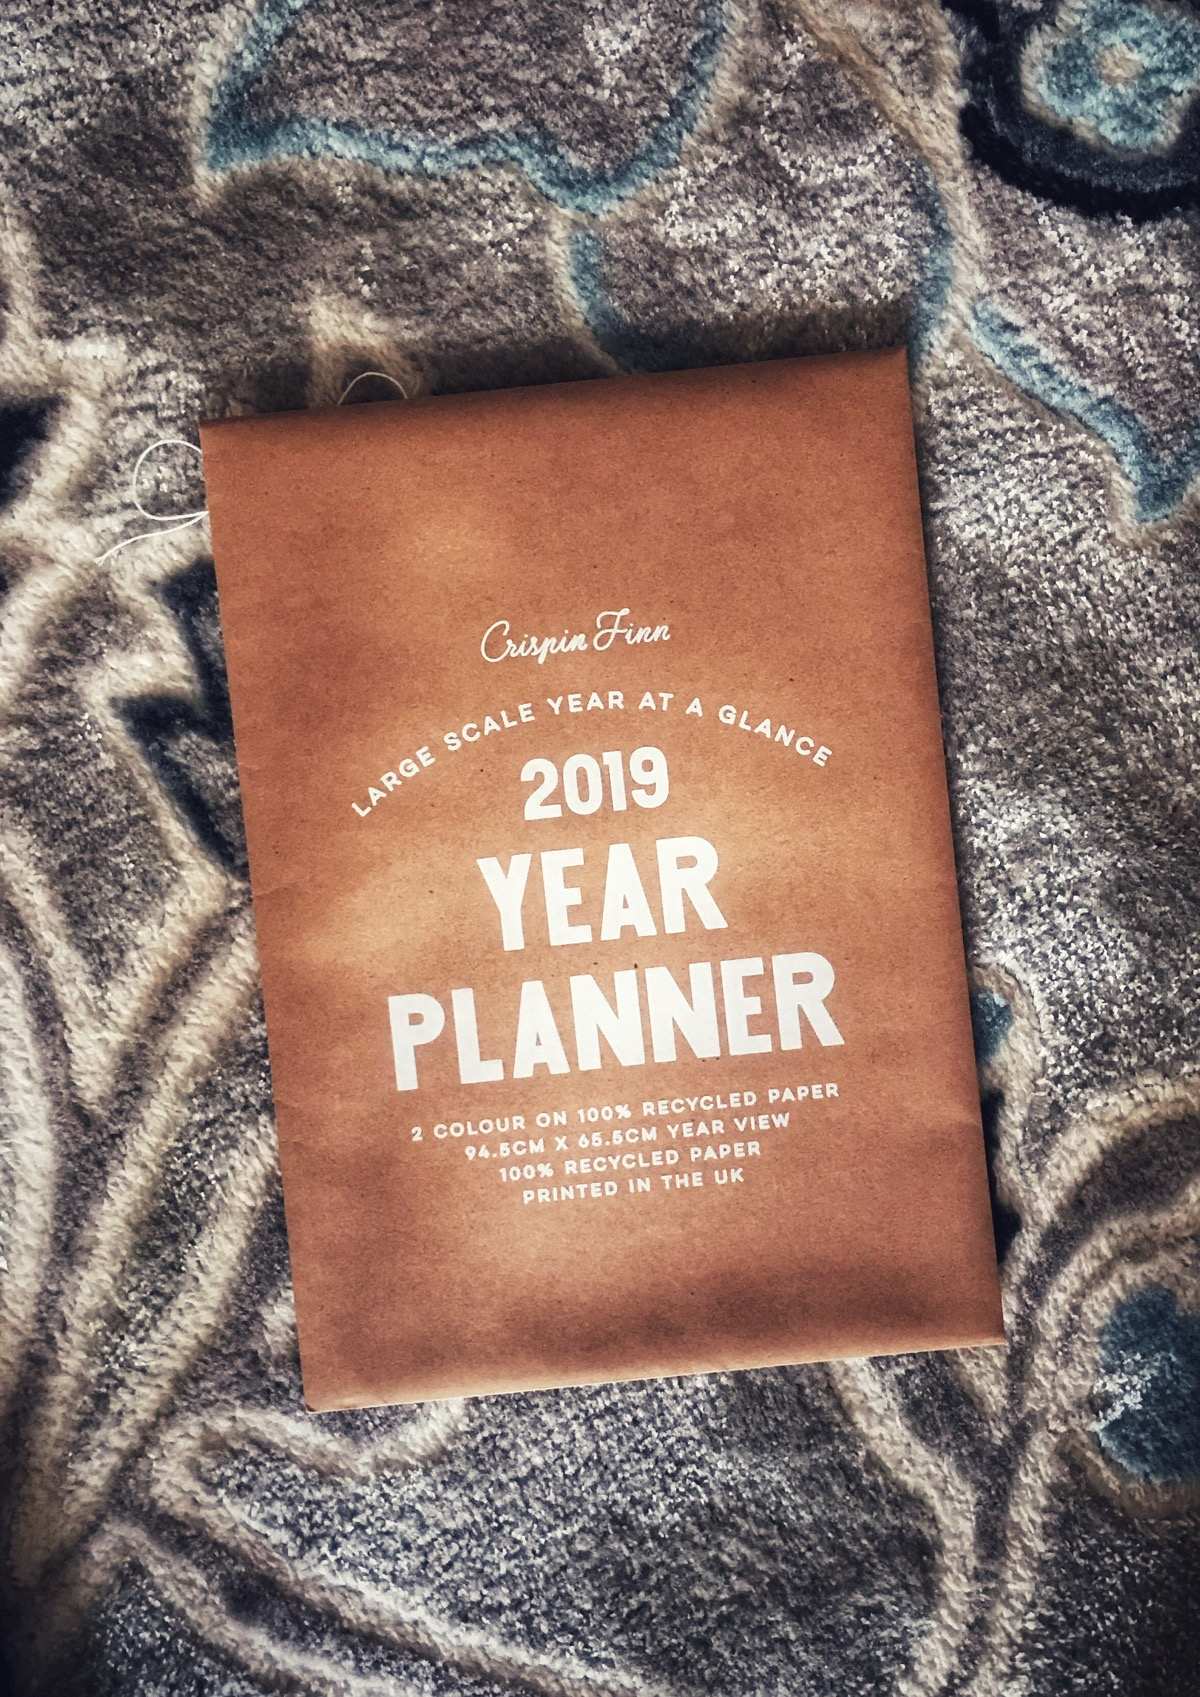 Envelope of Crispin Finn year planner